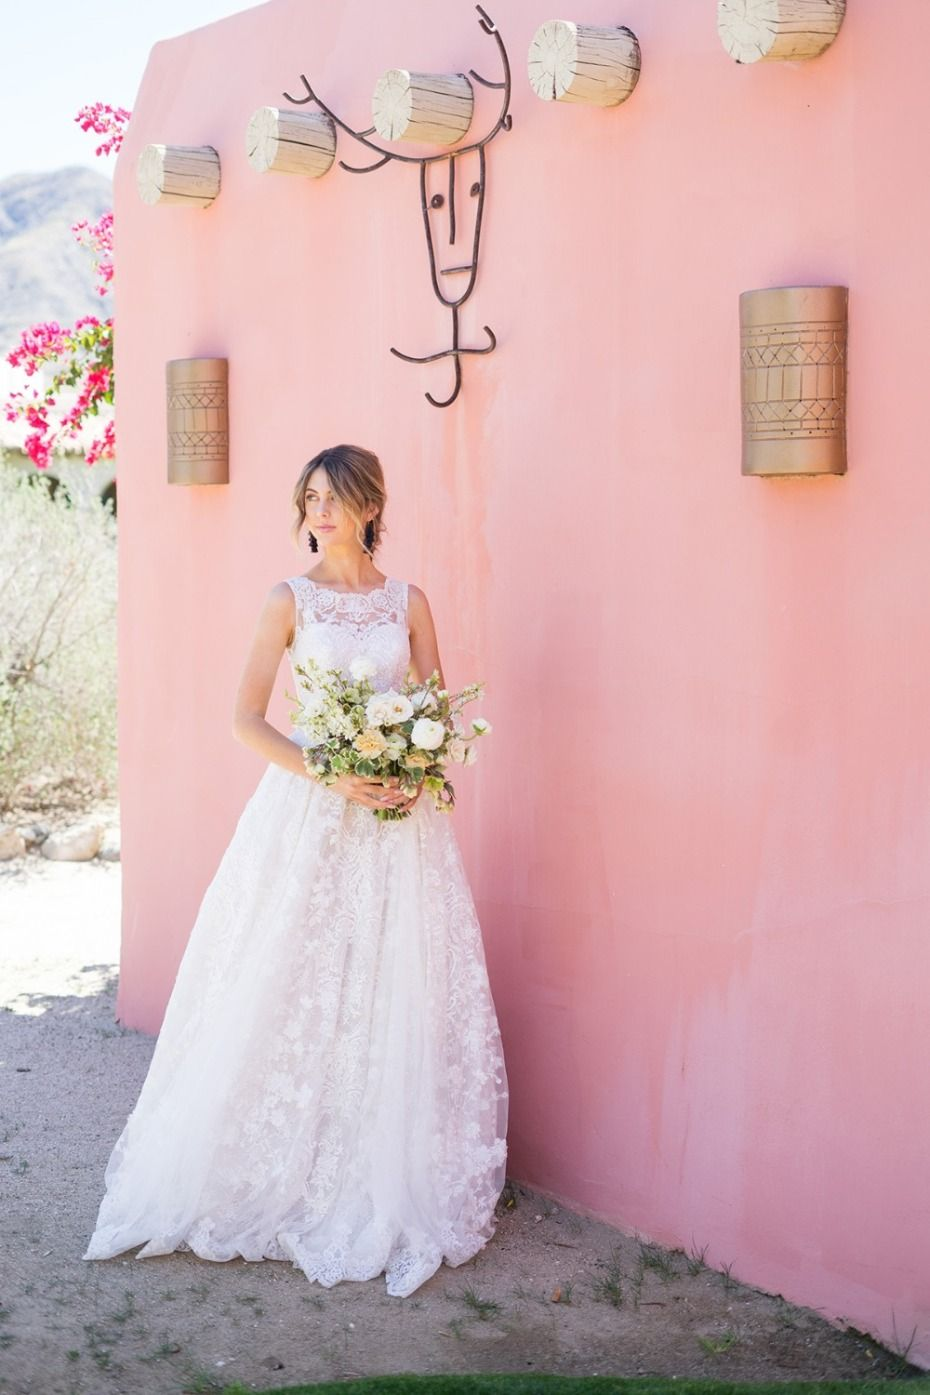 Traditional and Timeless: David\'s Bridal Wins With Both   Bodas ...